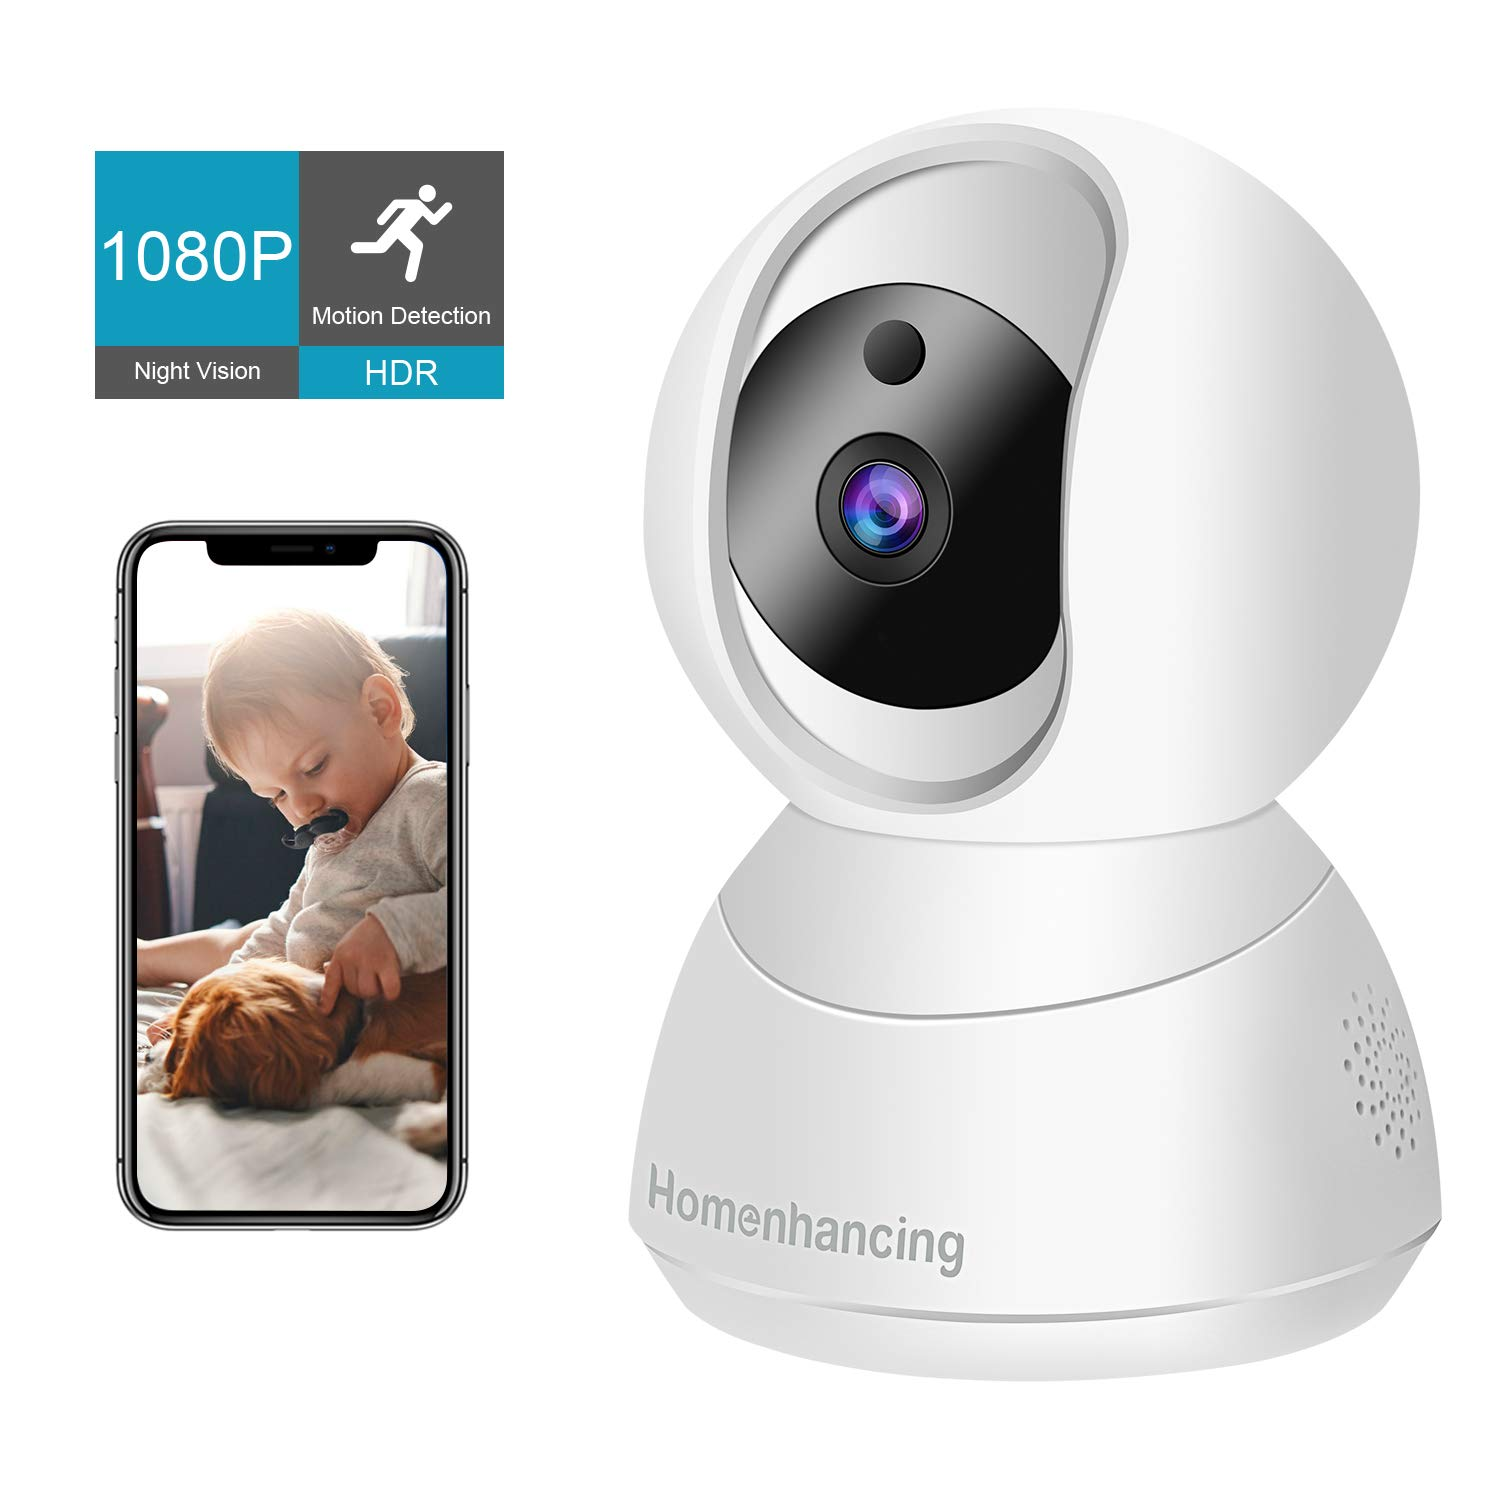 1080P Wireless Dog Camera Home, Indoor Nanny Cam FHD, Security Wi-Fi Camera and Motion Tracking/Detection, Dome Camera Night Vision, IP Camera Pan/Tilt/Zoom, Cloud Storage/Micro SD Card, iOS/Android